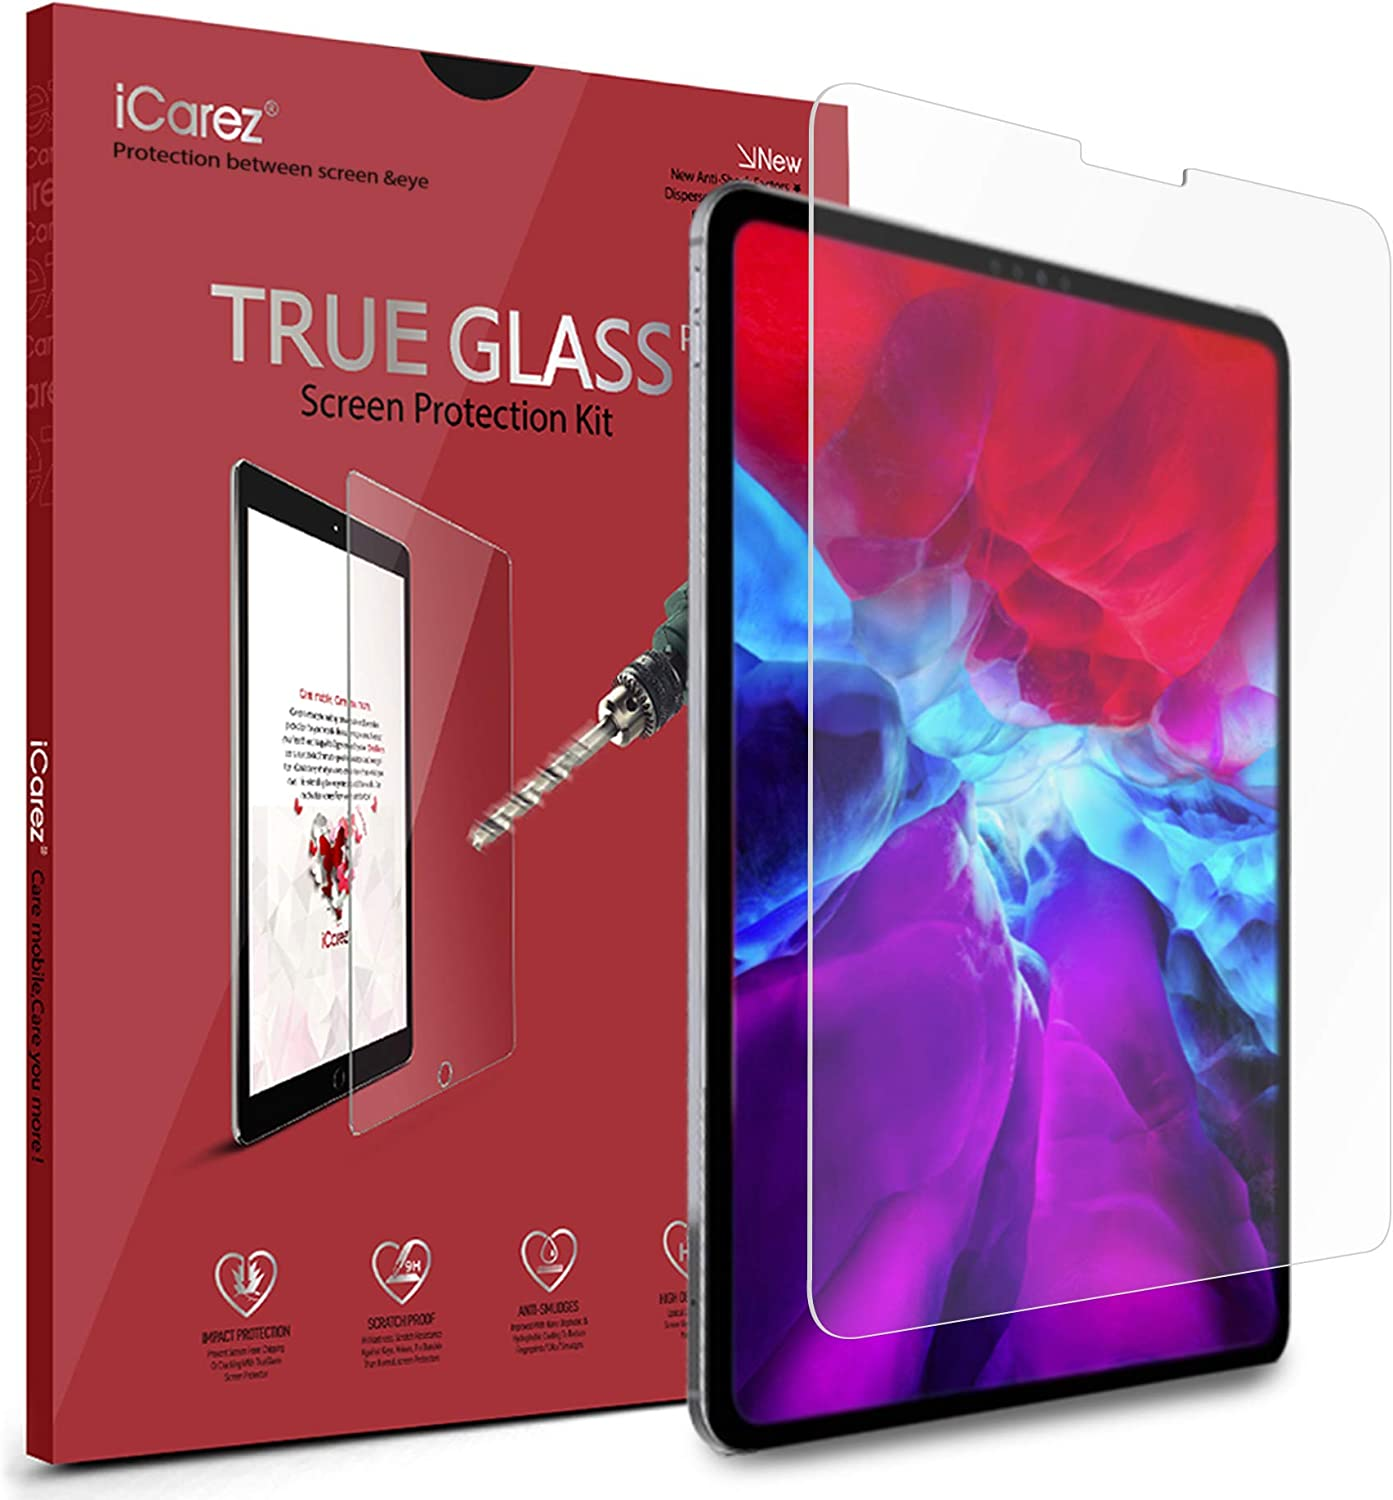 iCarez Tempered Glass Screen Protector for iPad Pro 12.9 2021/2020 / 2018 12.9-inches, 2-Pack